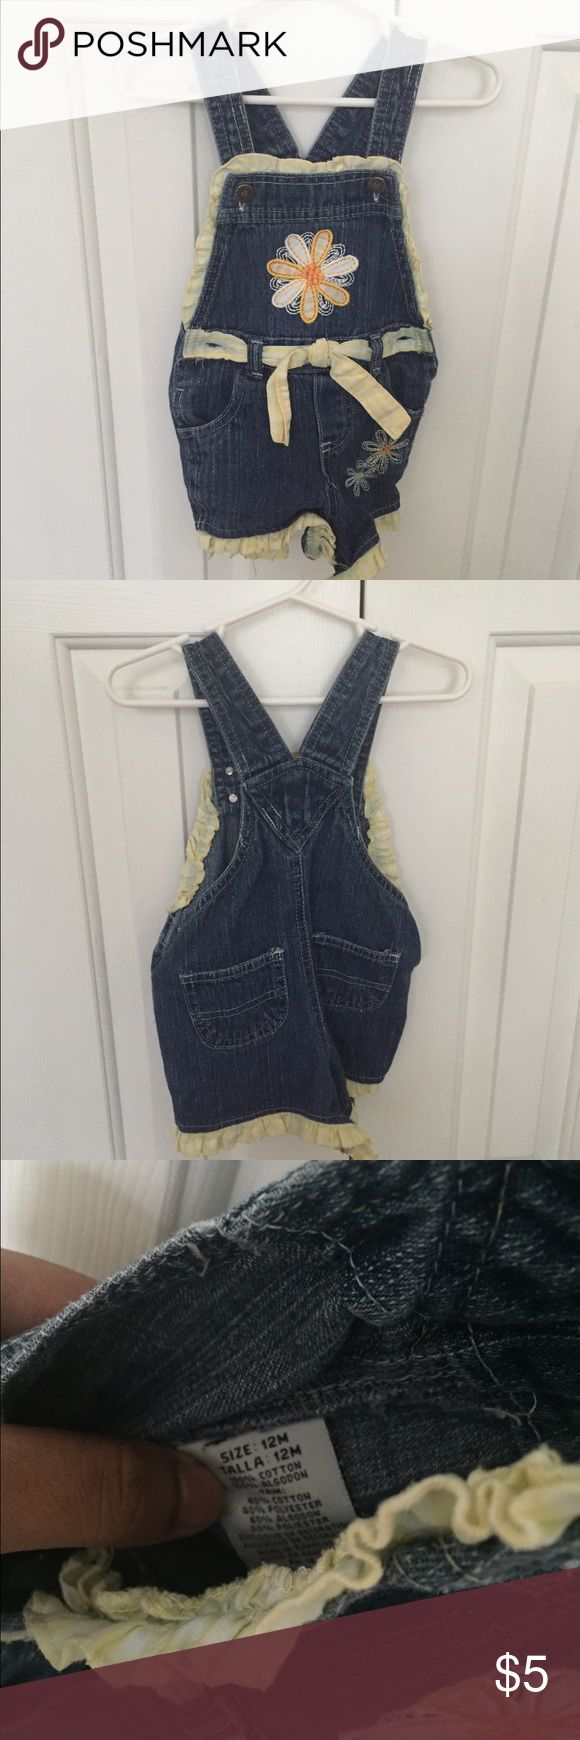 Baby girl blue jean overall shorts. Size 12 months Blue jean overalls for baby girl with yellow accents. Fair condition. Bundle and save! Bottoms Jeans